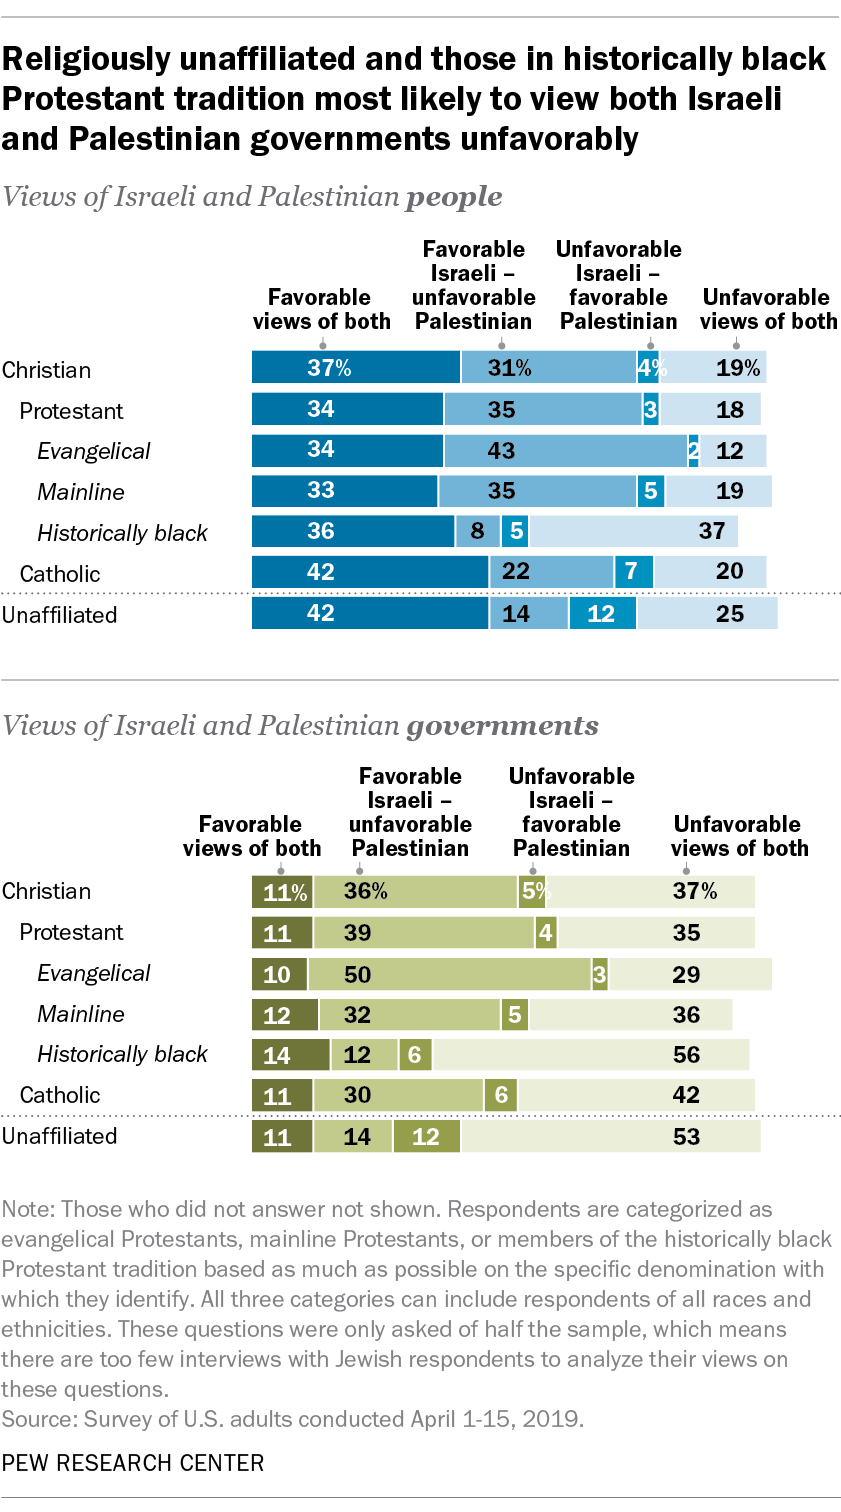 Religiously unaffiliated and those in historically black Protestant tradition most likely to view both Israeli and Palestinian government unfavorably